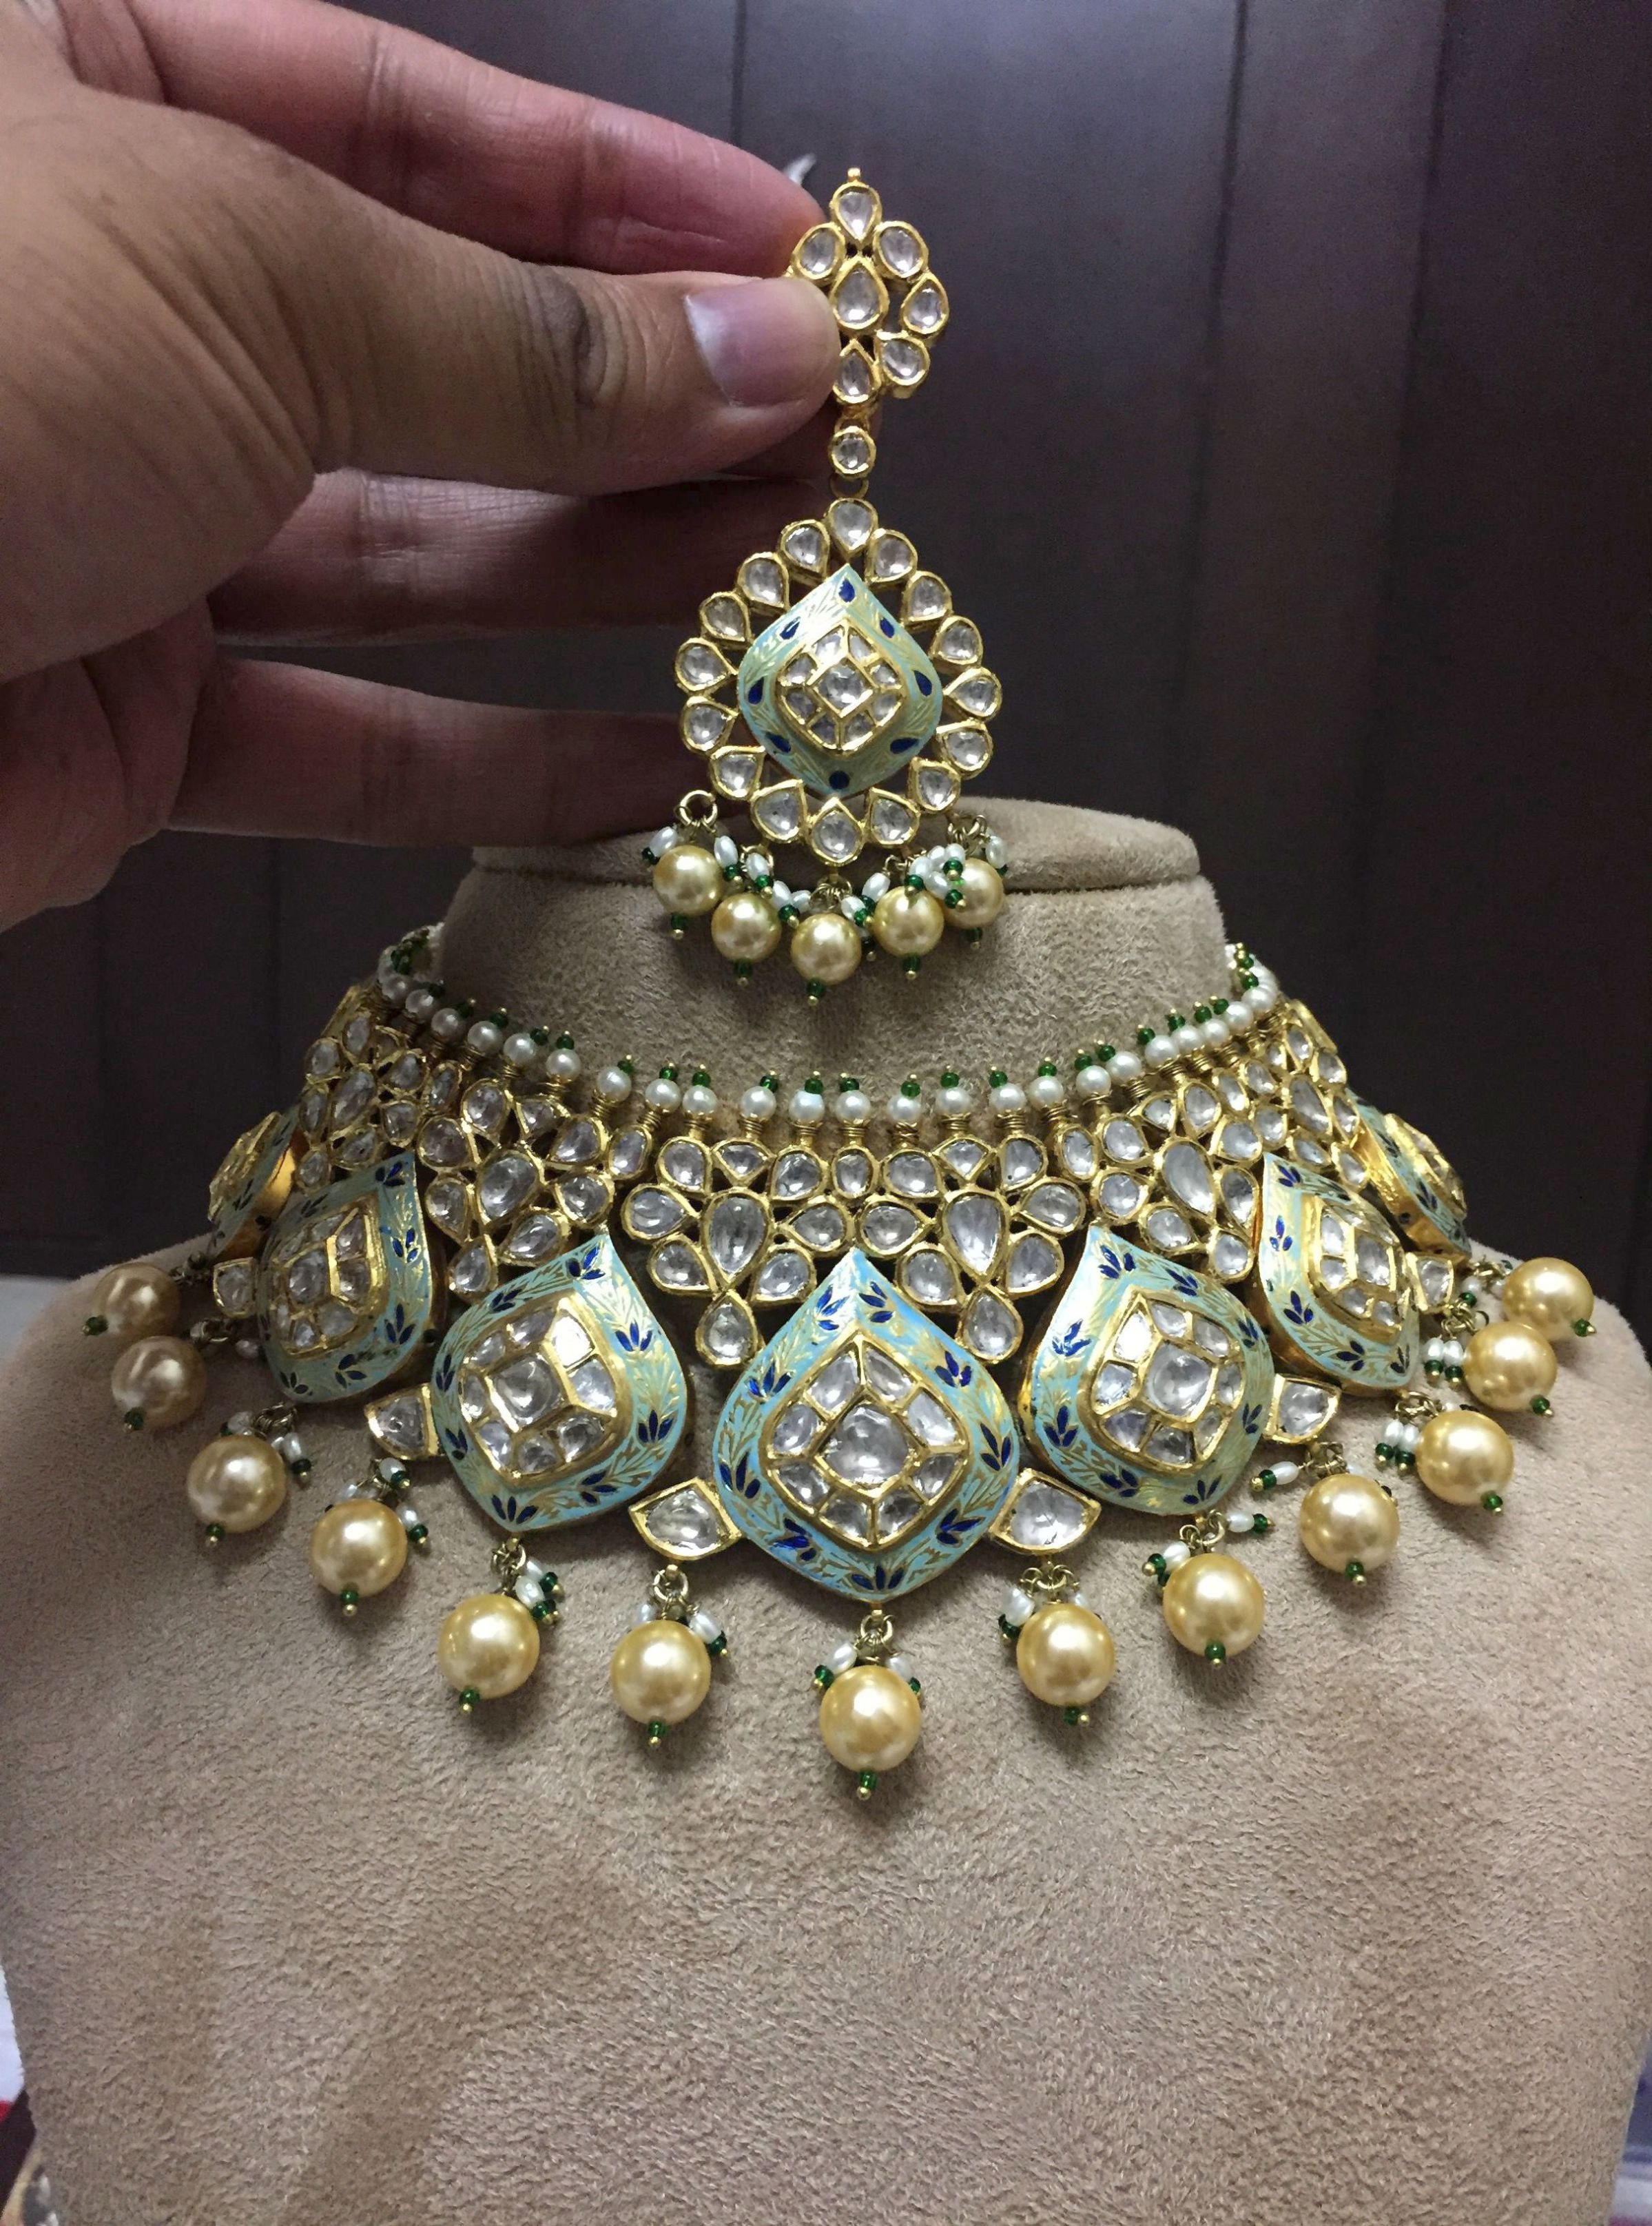 Indian Jewellery Stores Near Me : indian, jewellery, stores, India, Fashions